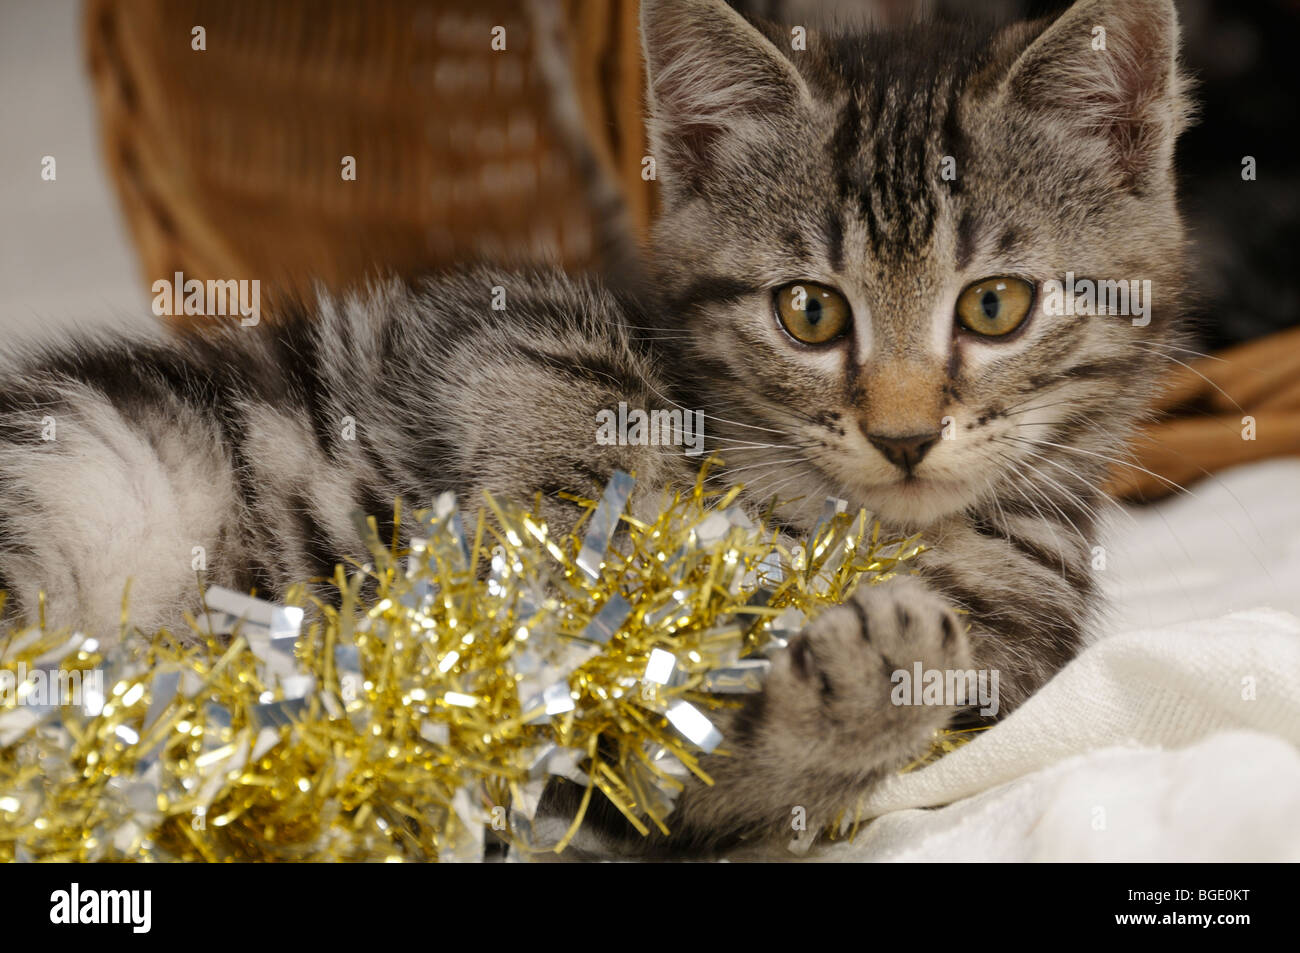 Stock photo of a kitten playing with some tinsel. - Stock Image